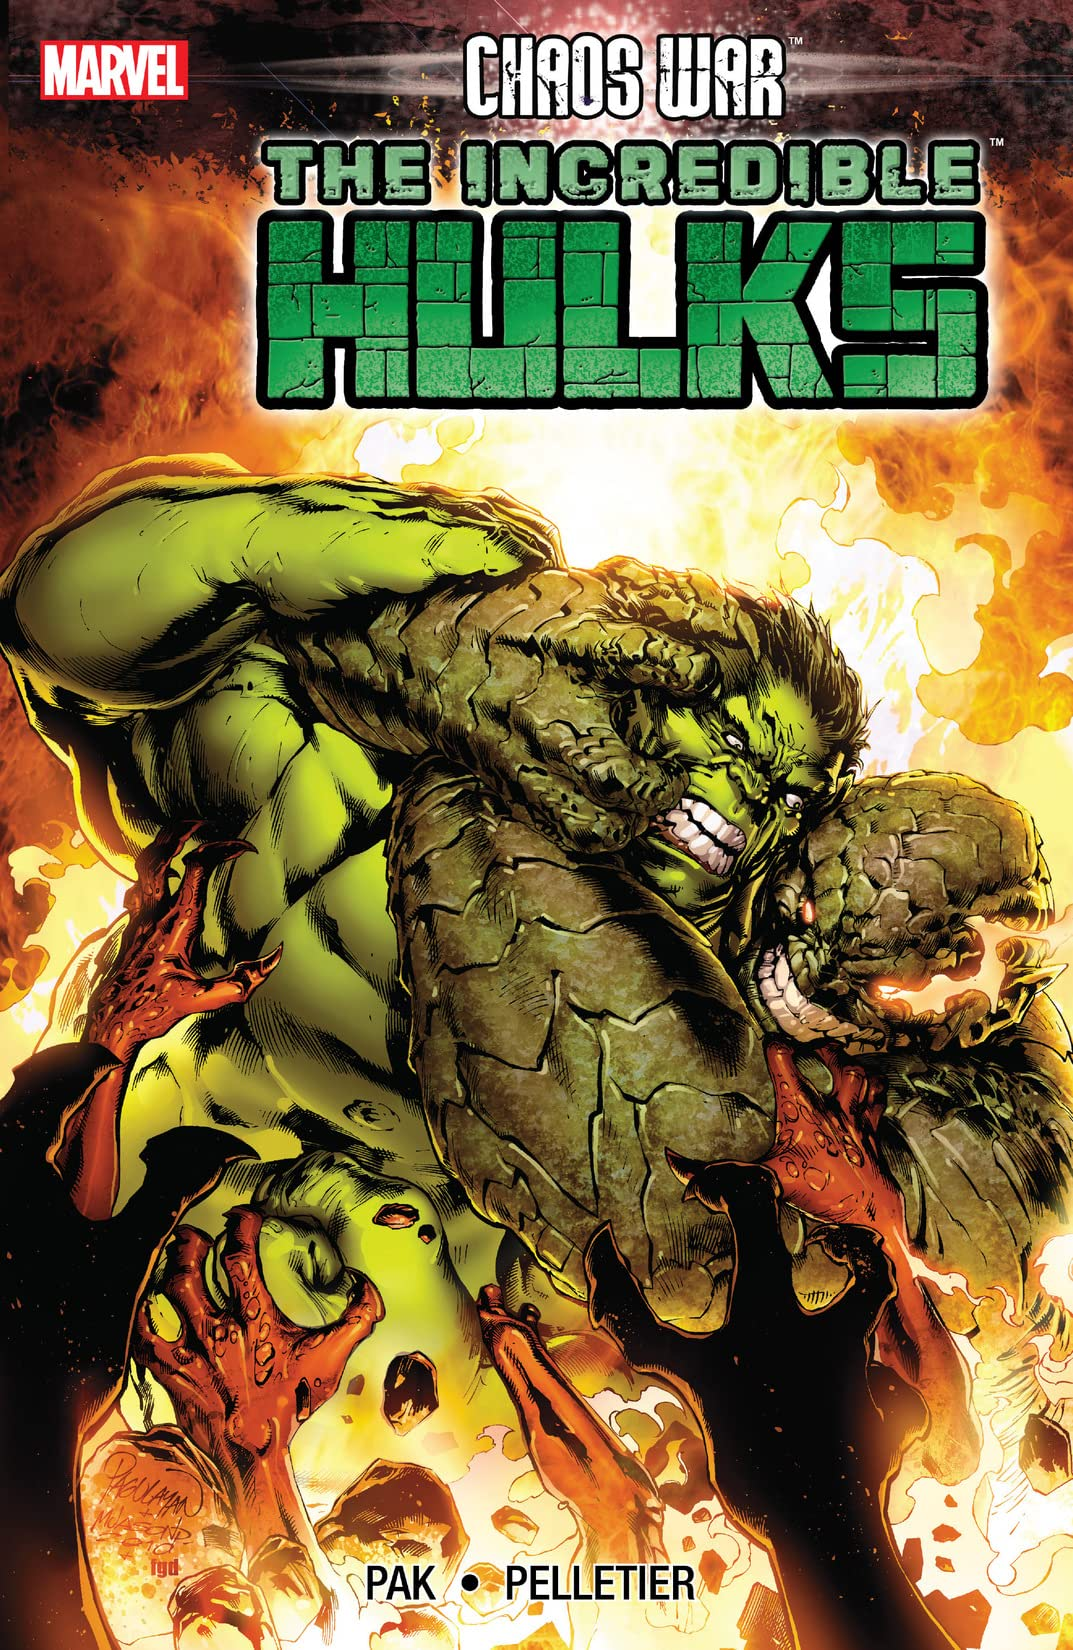 Chaos War: Incredible Hulks